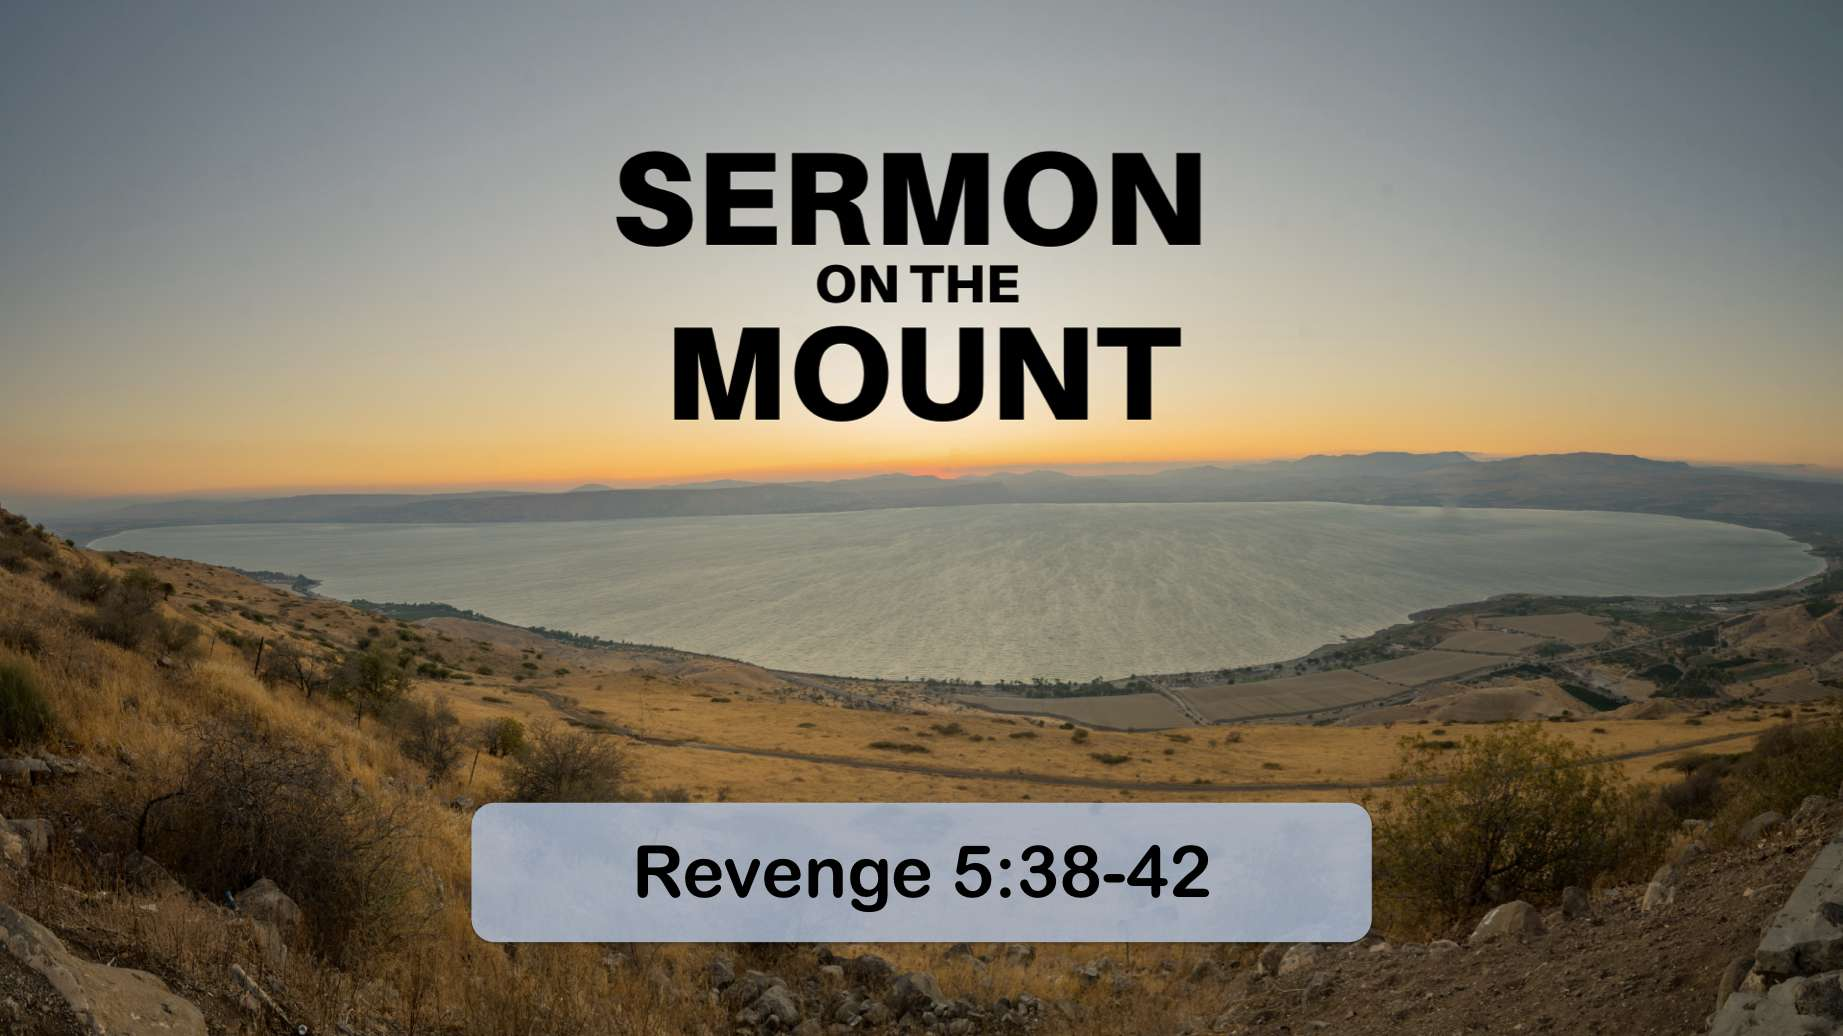 The Sermon on the Mount 7 – Revenge